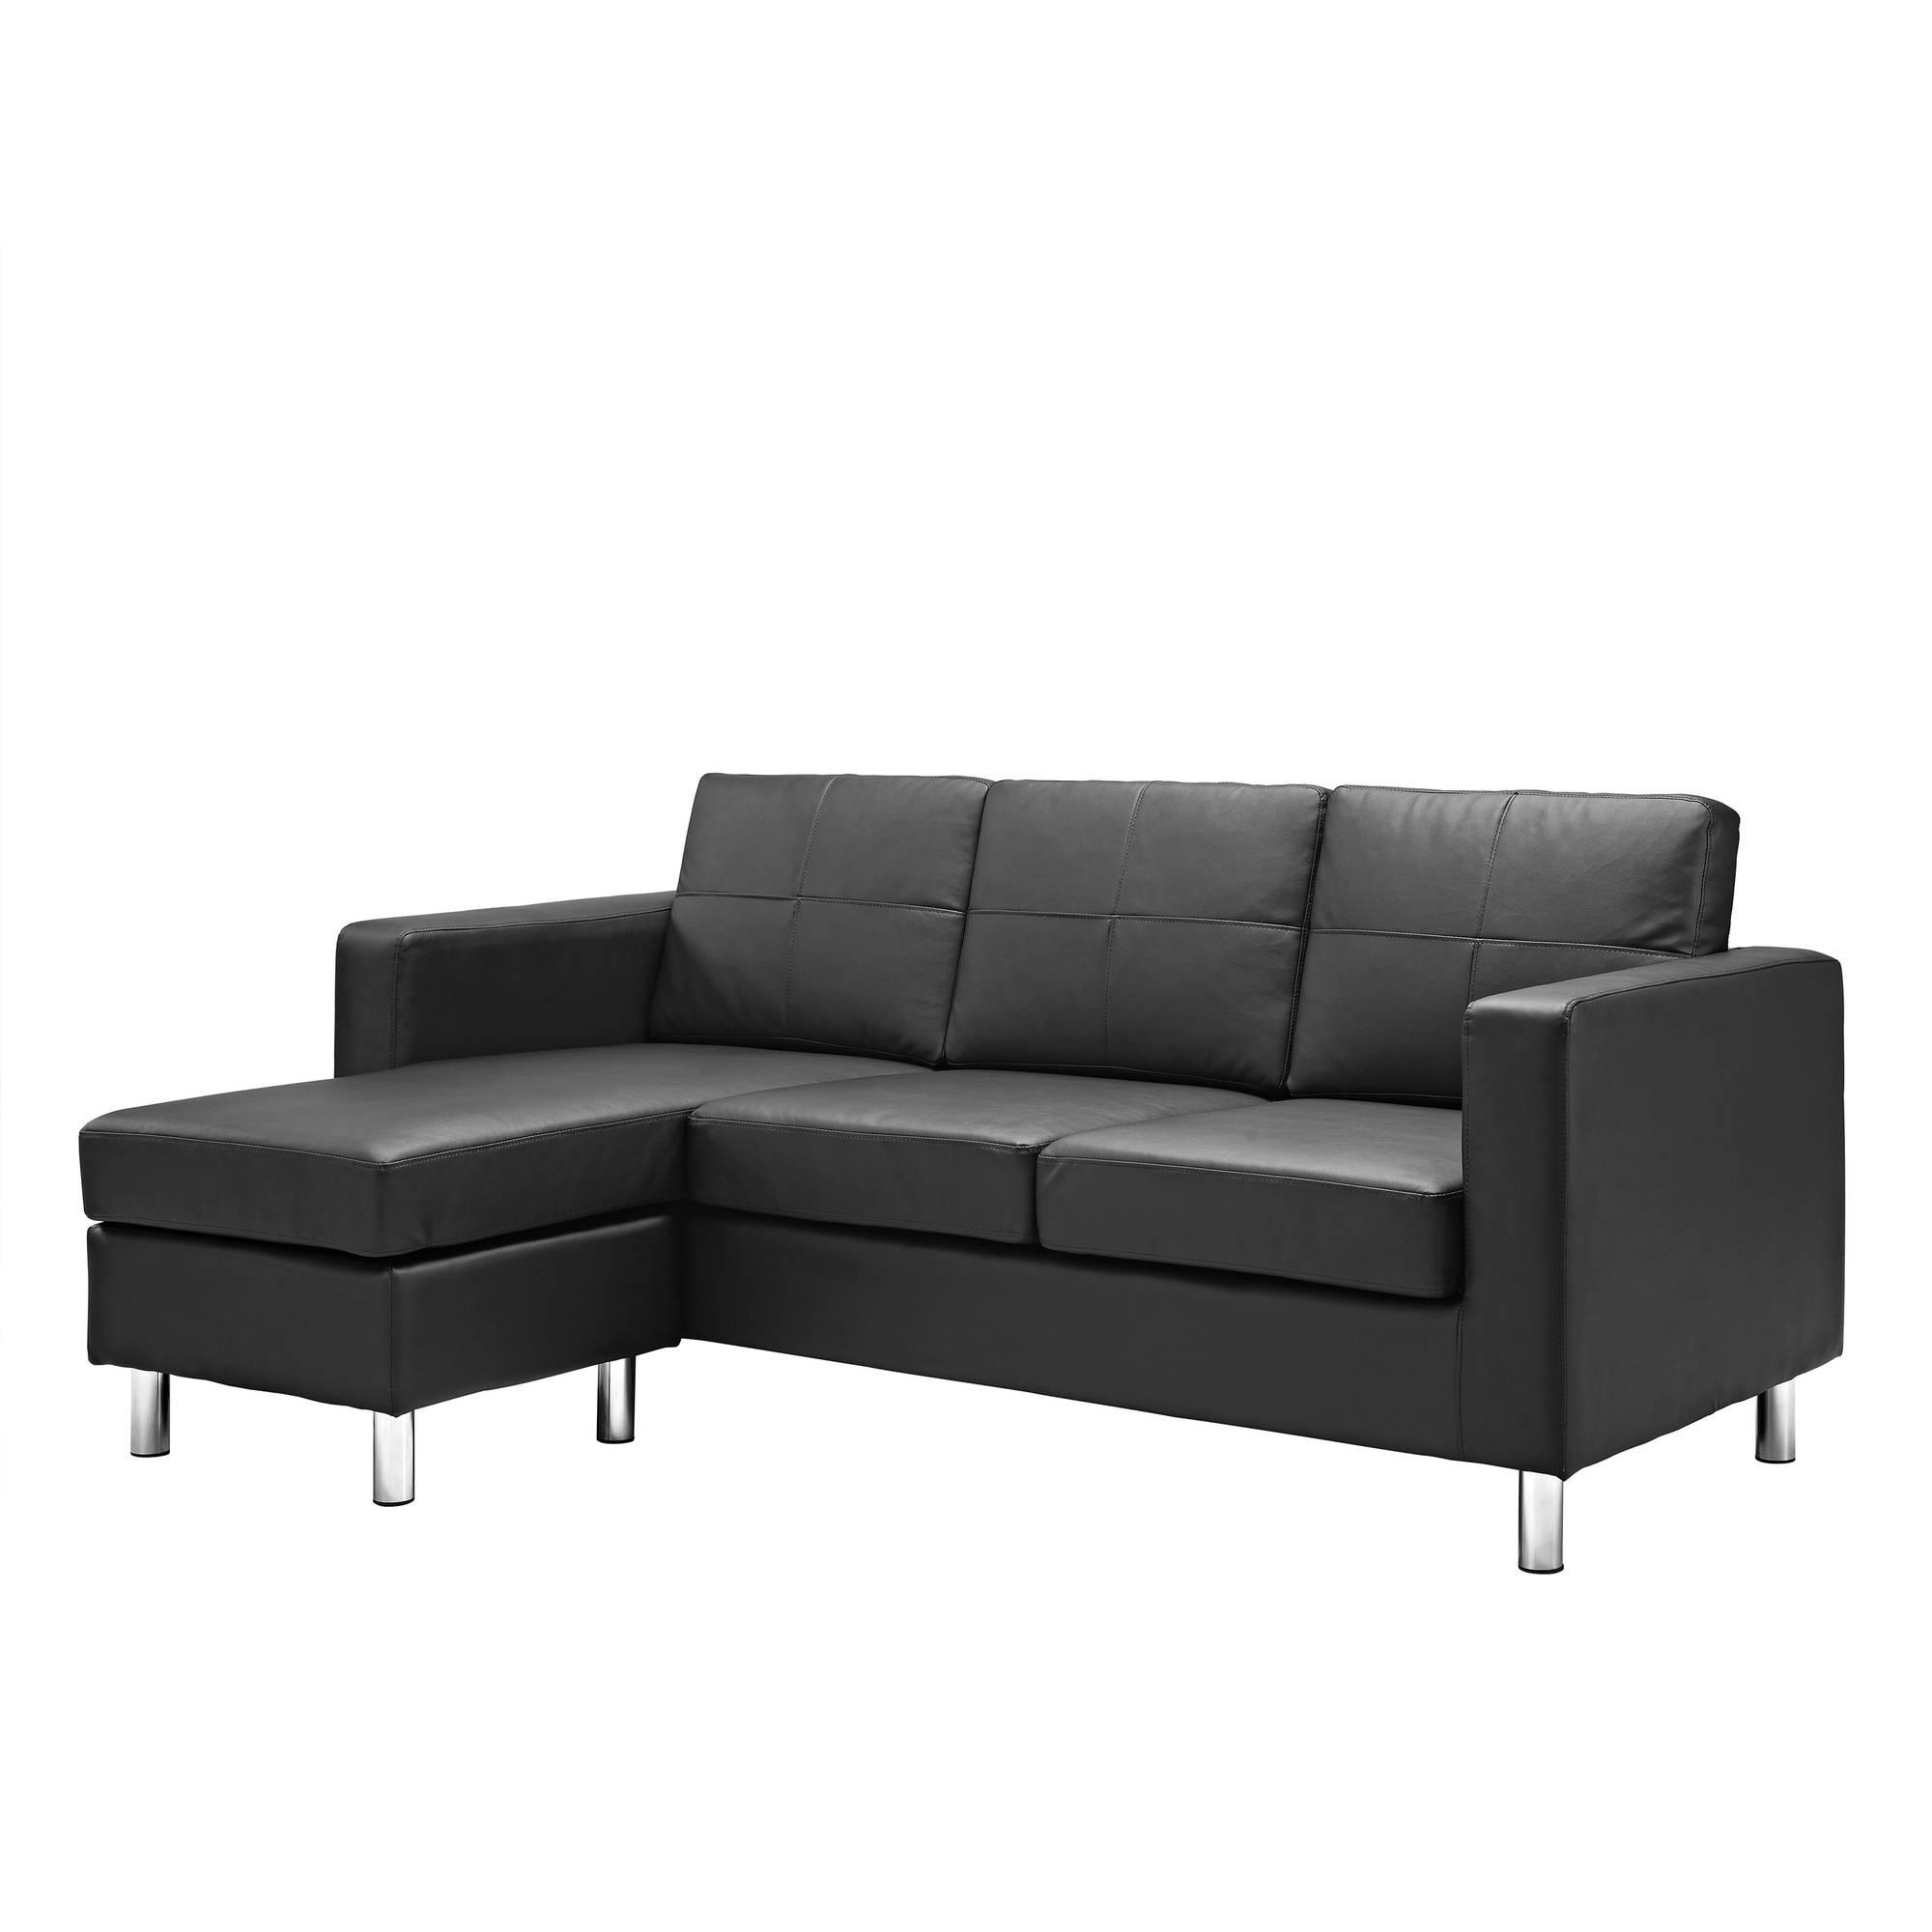 Furniture & Sofa: Perfect Small Spaces Configurable Sectional Sofa Regarding Short Sectional Sofas (Image 5 of 20)